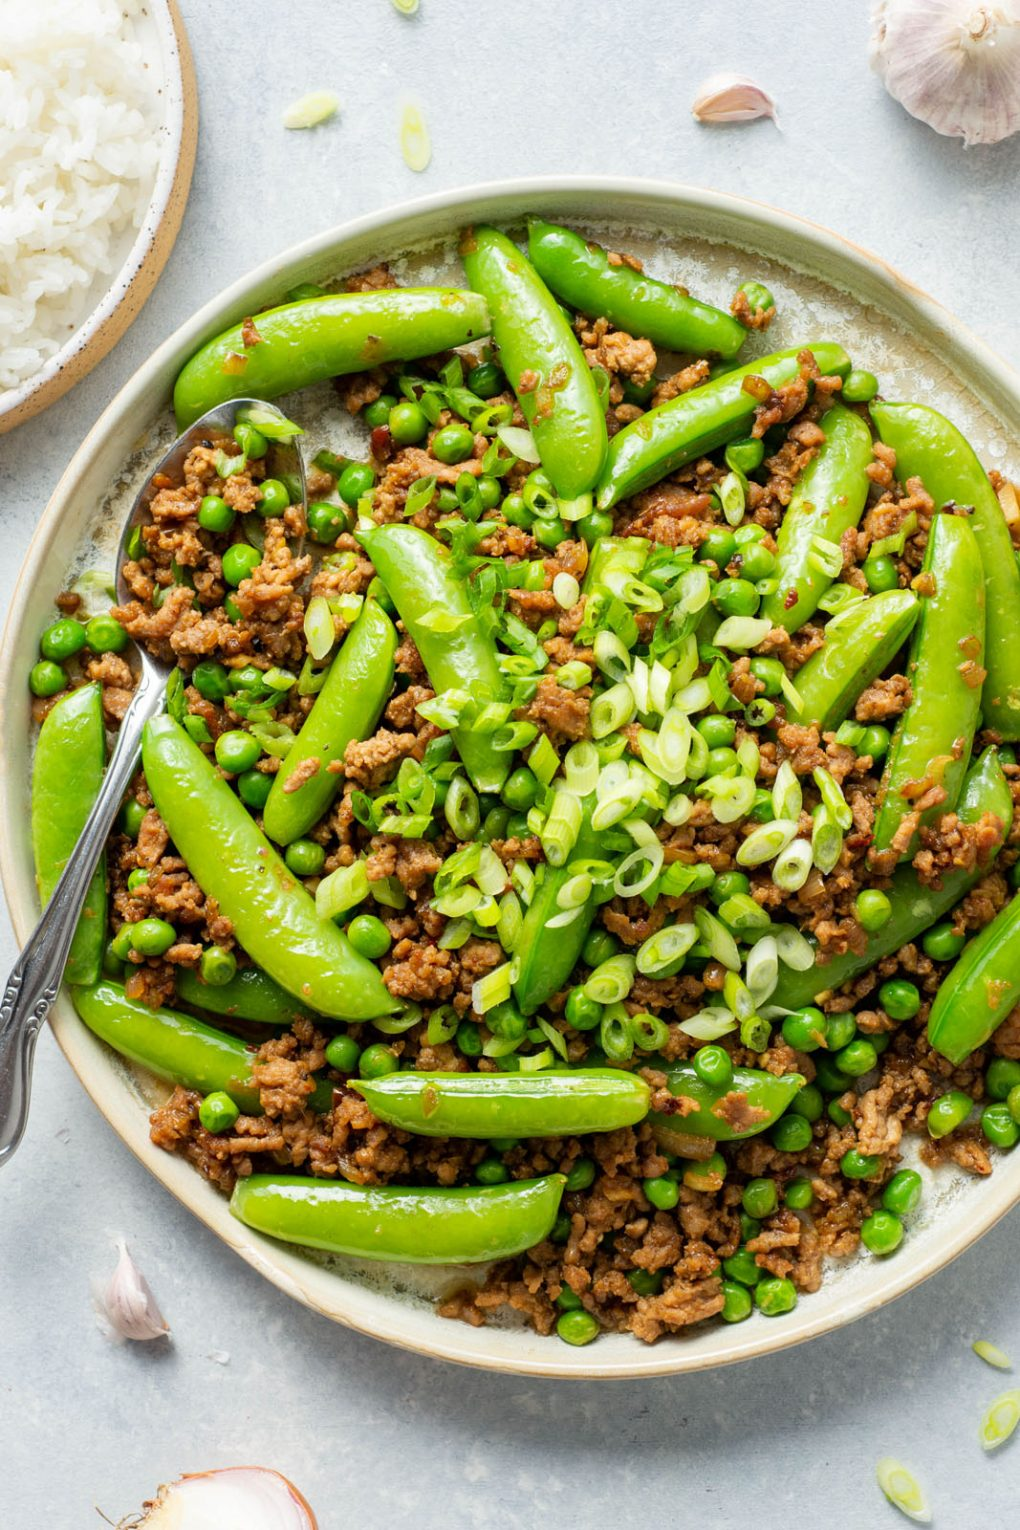 Up close shot of a round white rimmed ceramic plate filled with a crispy ground pork stir fry with green peas, sugar snap peas, and topped with plenty of green onions. A large silver spoon filled with stir fry is angled off the side of the plate. On a light colored background.